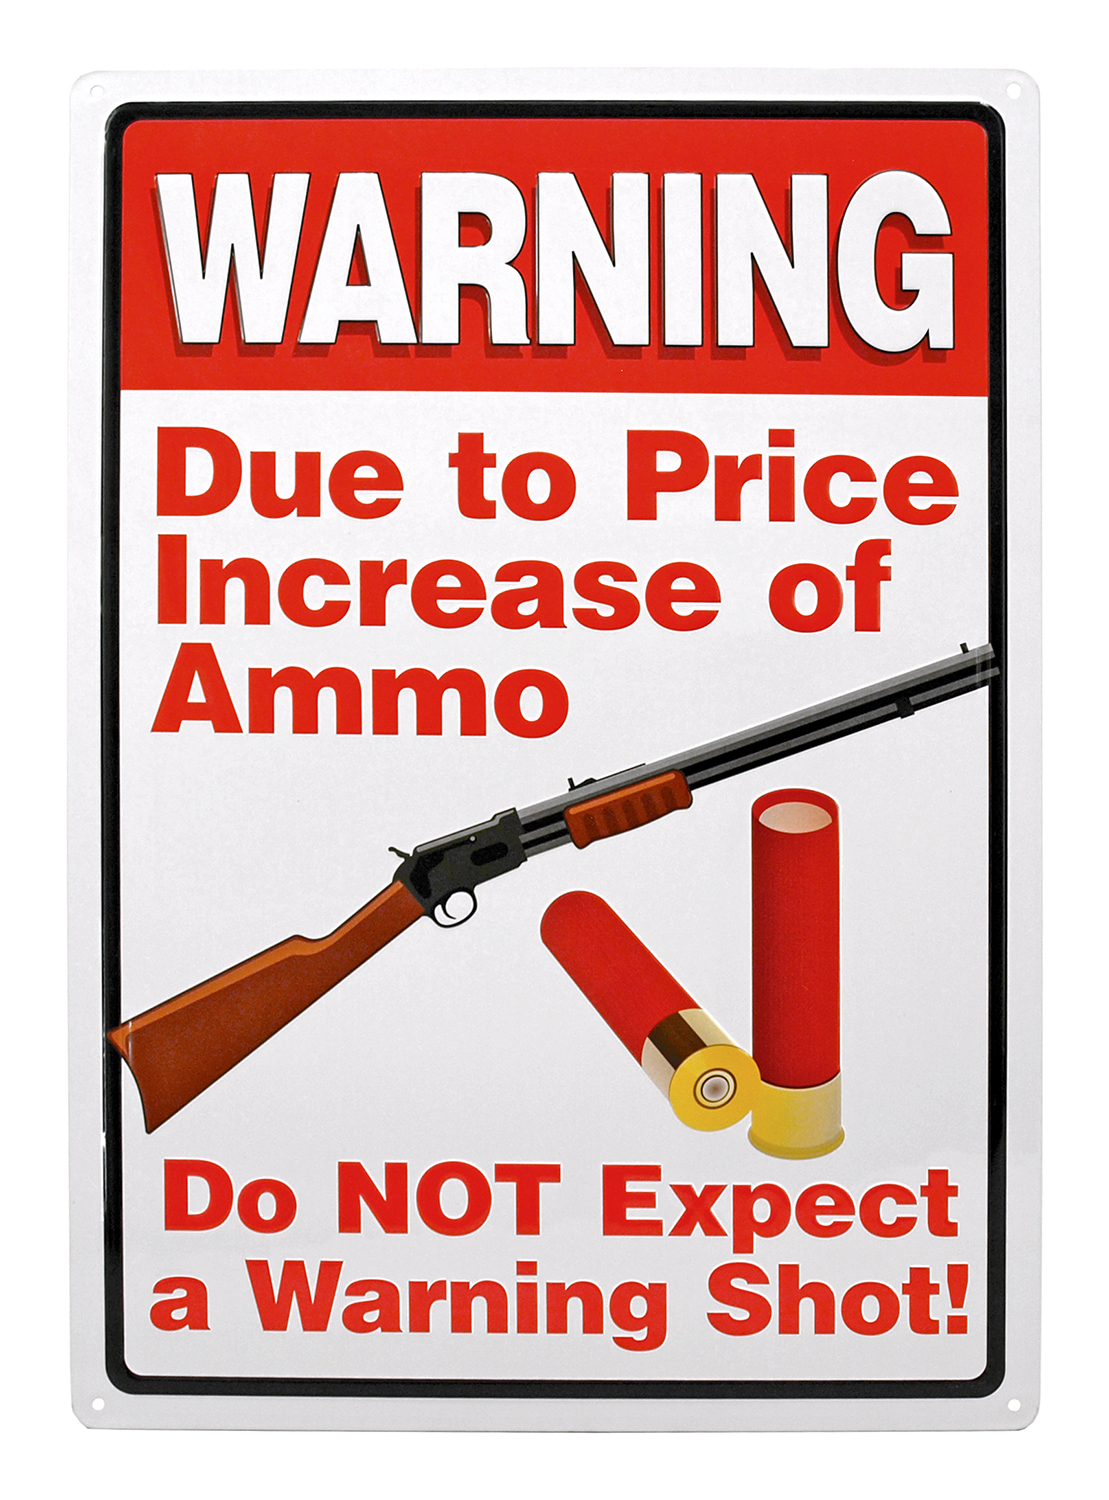 Warning Shot Metal Sign